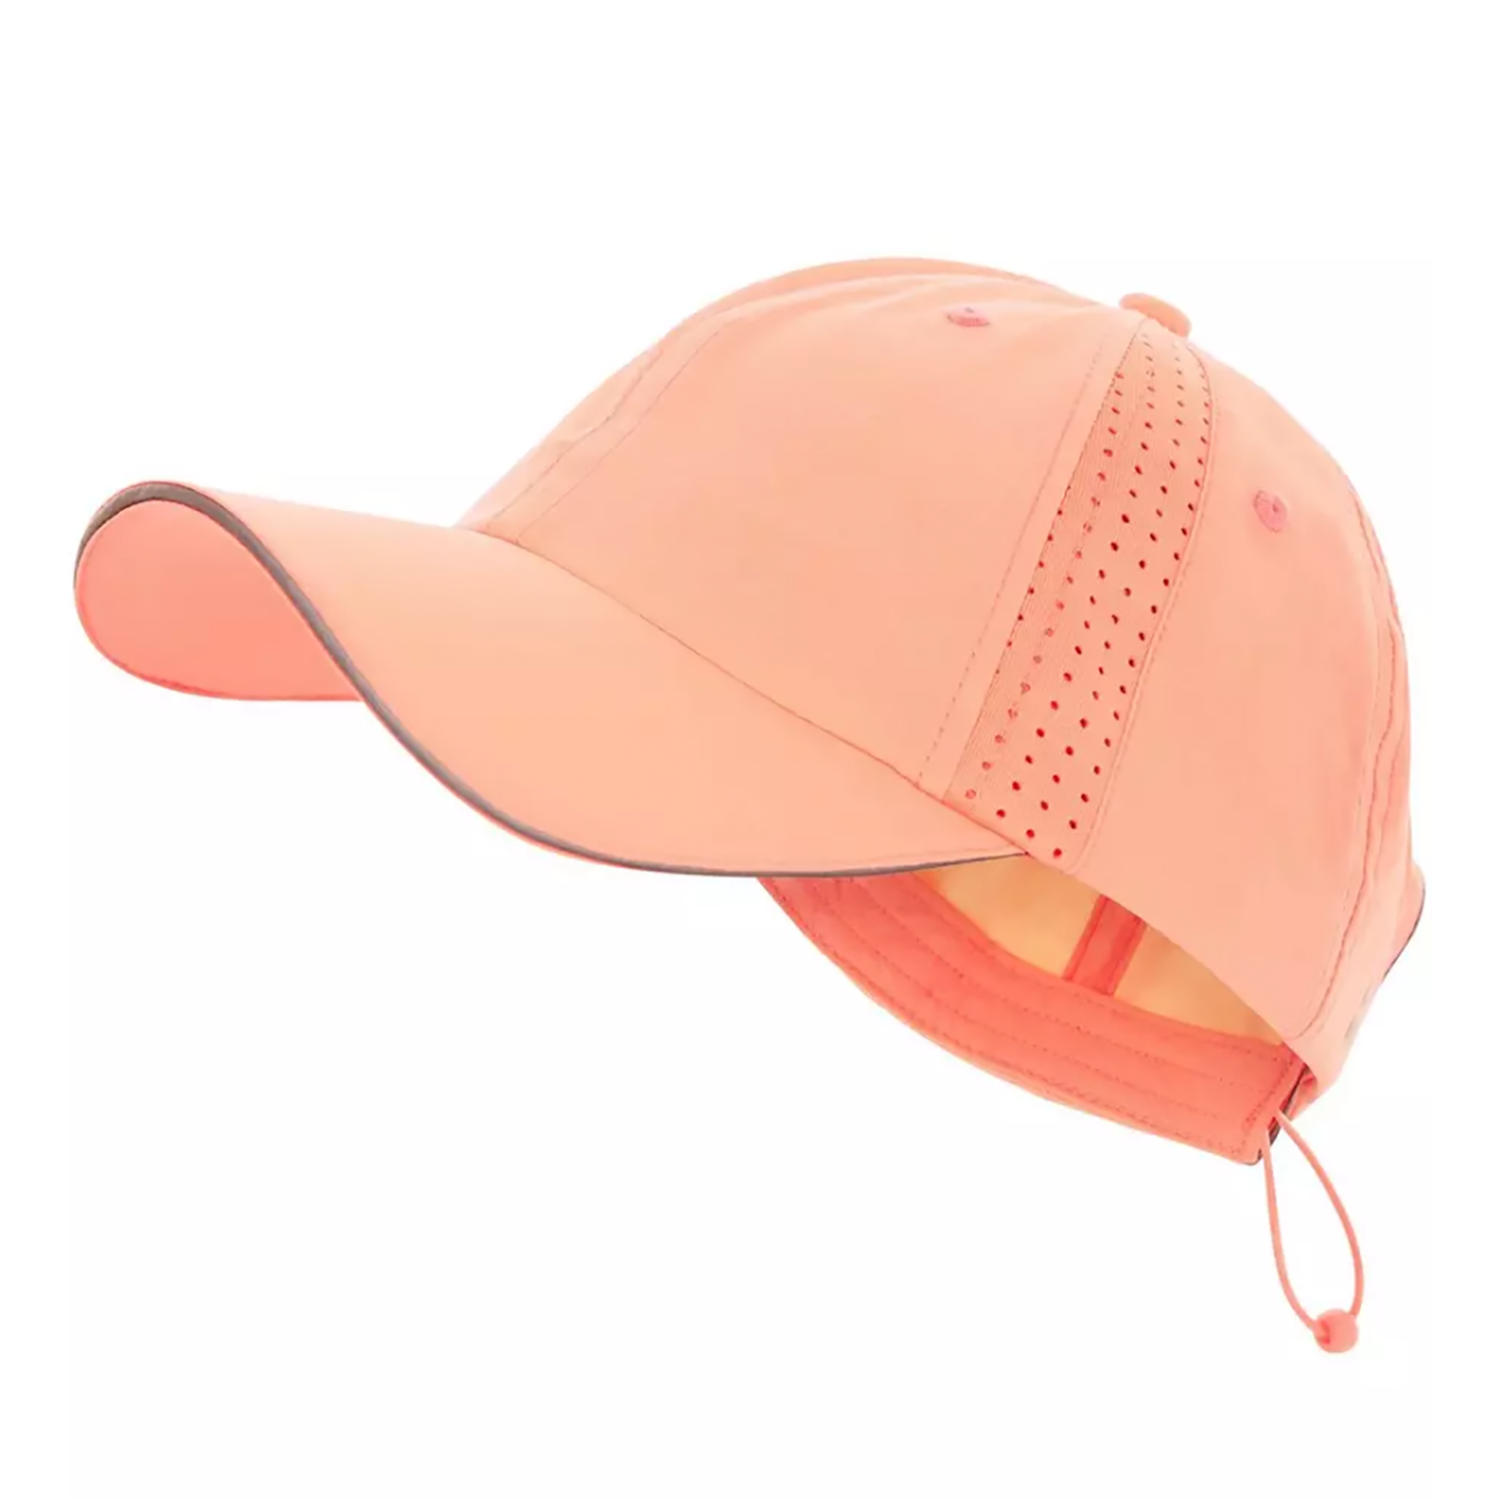 Summer nights mean more glorious late-night runs. Post-sunset, this Sweaty Betty cap has you covered with reflective details to keep you visible to other runners, bikers, and cars on the road. Plus, it's incredibly lightweight, adjustable for a perfect fit, and is made of quick-drying material so you stay cool and dry from start to finish. (Related: The Best Running Hats for Women You Can Wear In Any Climate)